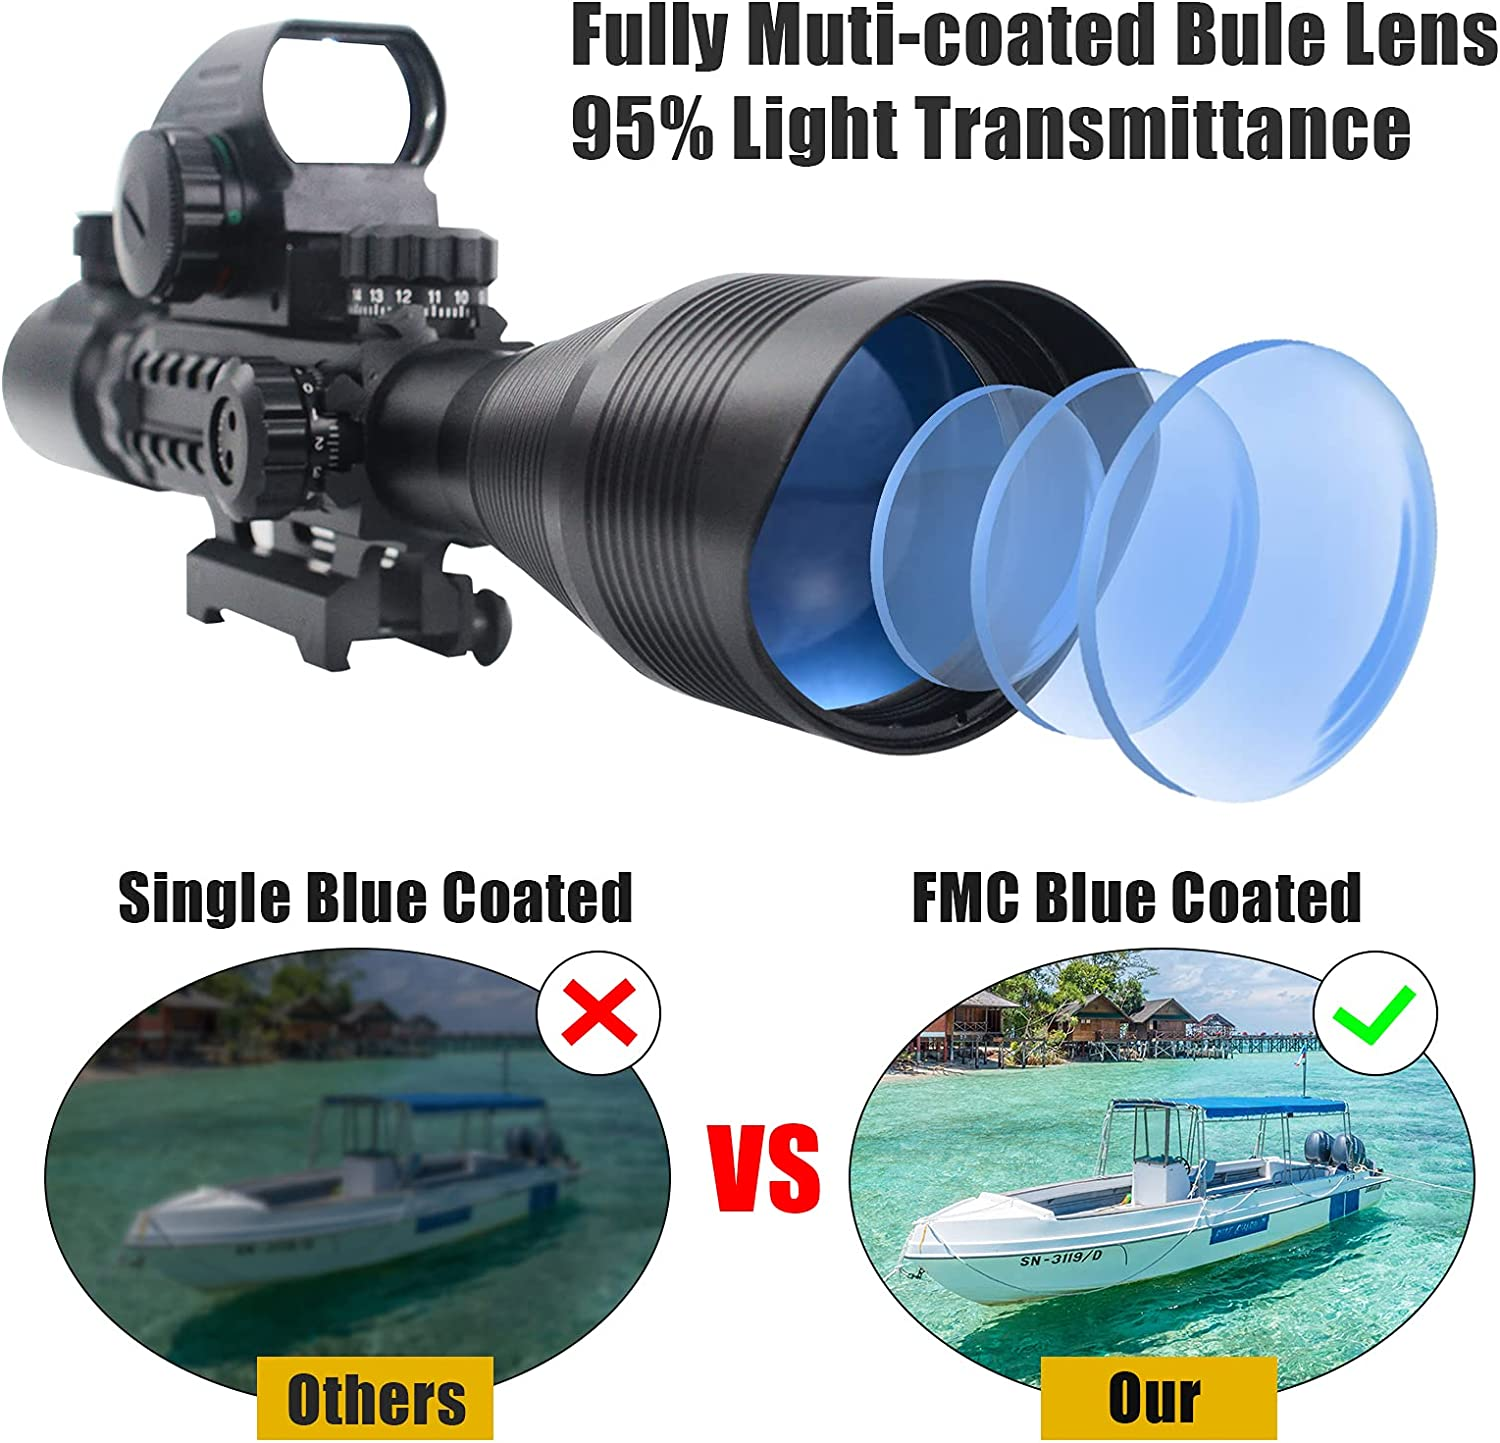 FMC Blue Coated - Best Holographic Sight